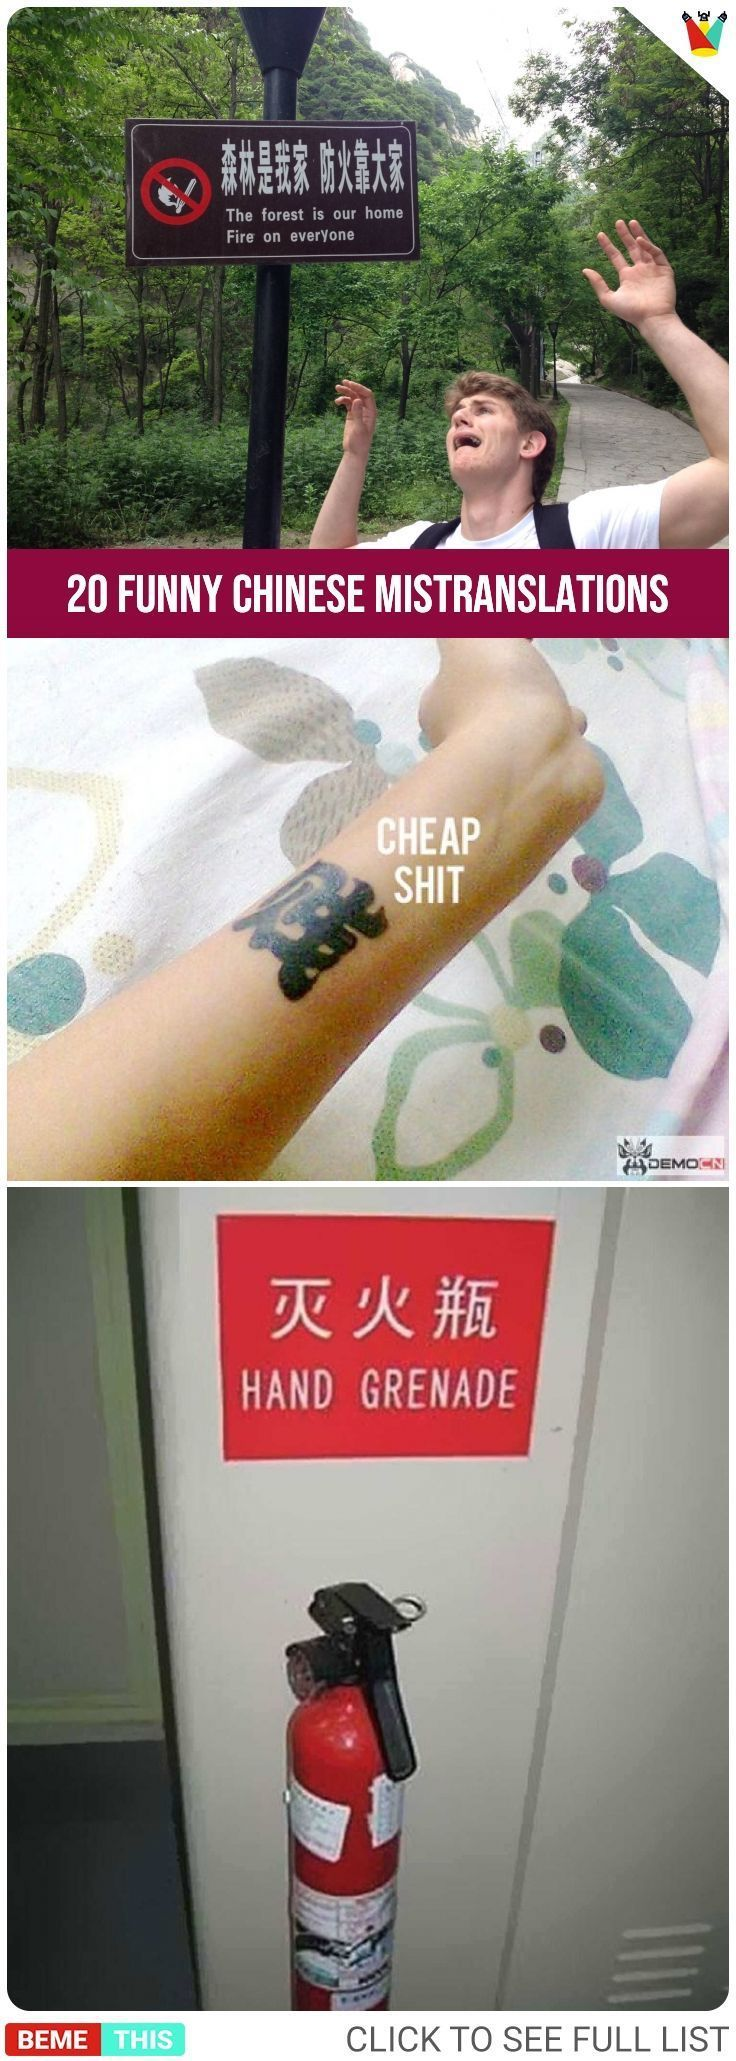 20 Funny Chinese Mistranslations Funny Chinese Funny Chinese Quotes